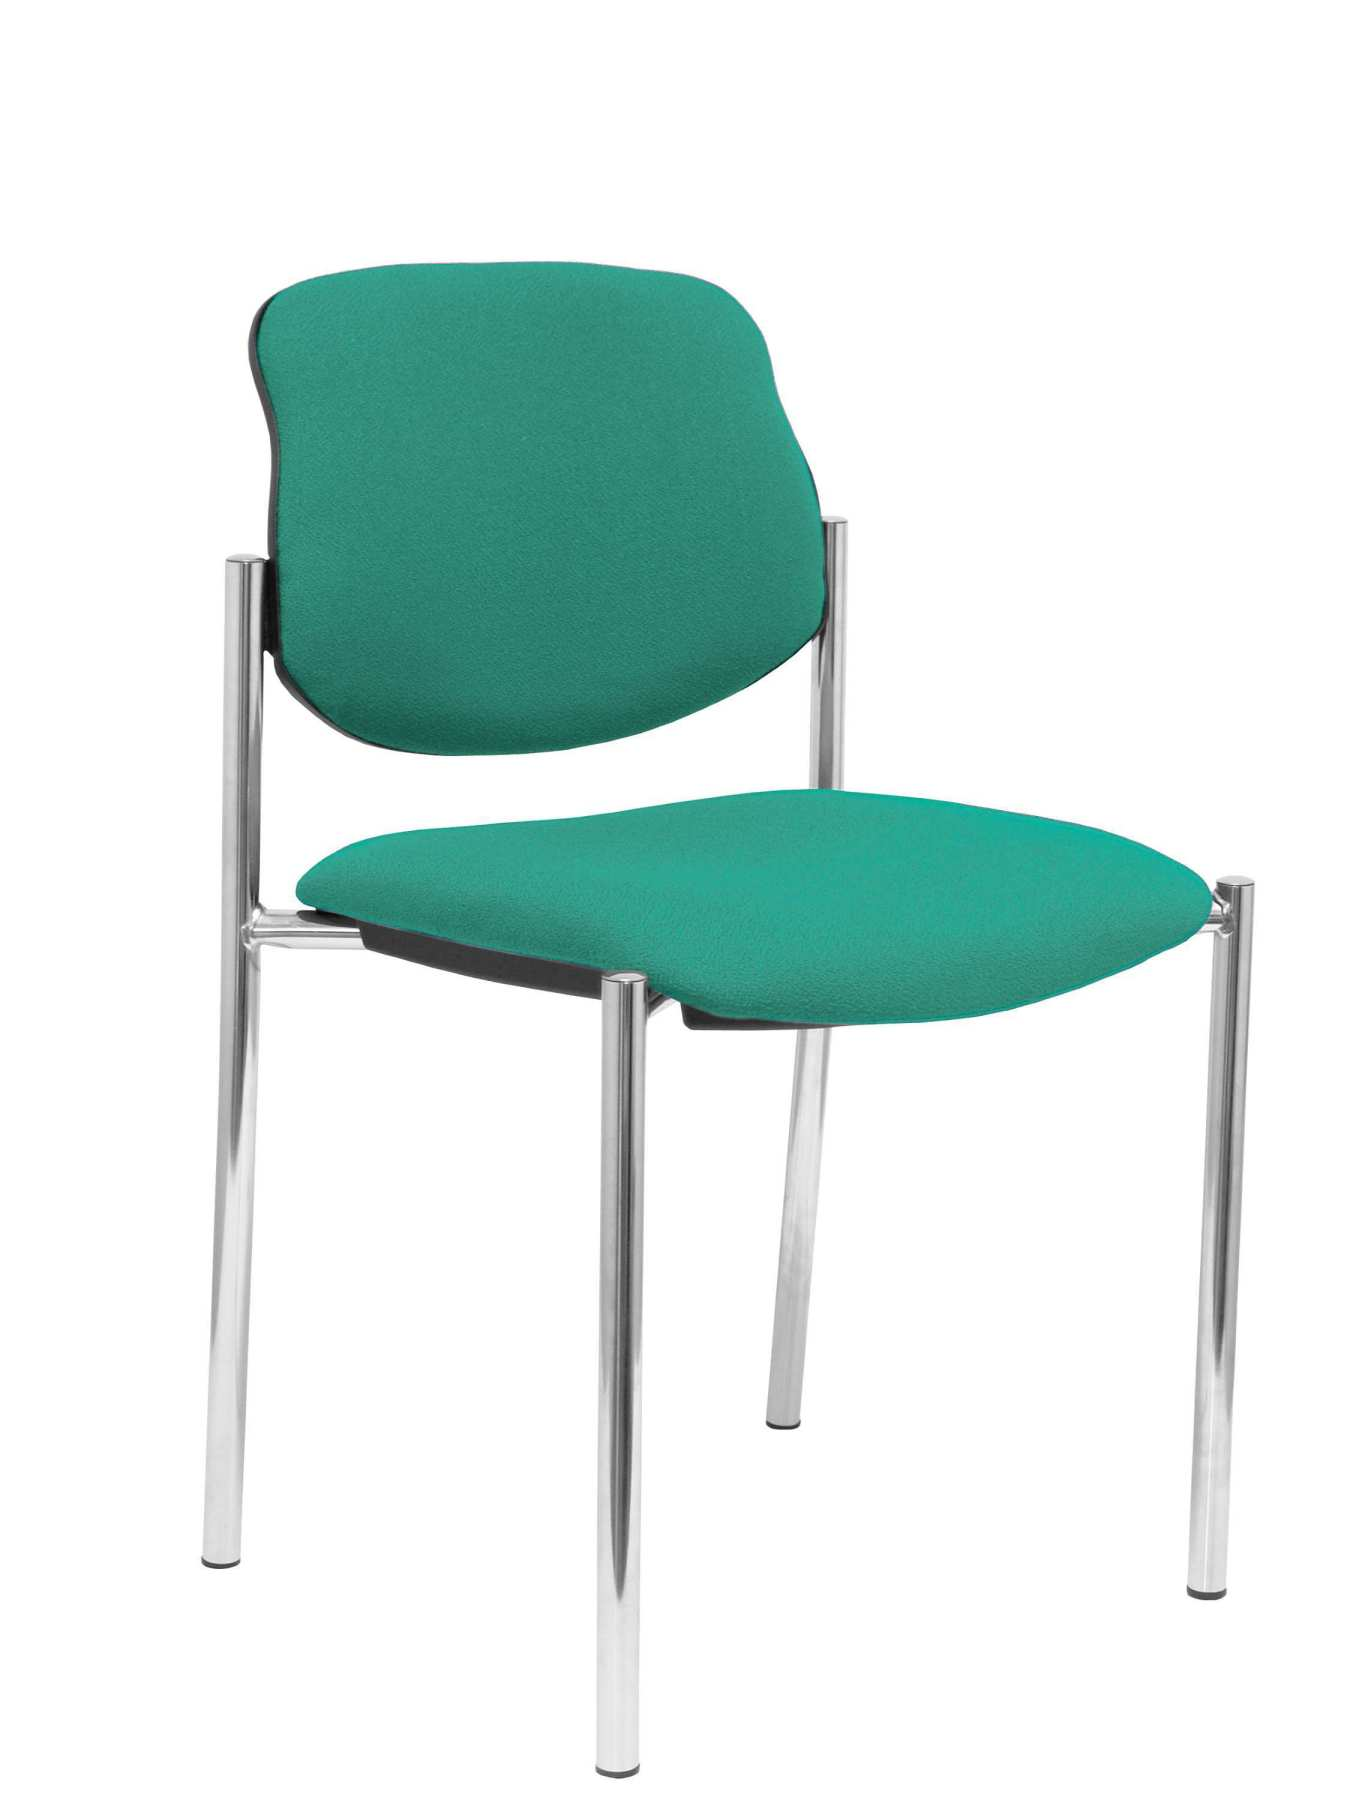 Confident Chair 4 leg and estructrua chrome Seat and back upholstered in fabric BALI Green PIQUERAS AND CR|  - title=